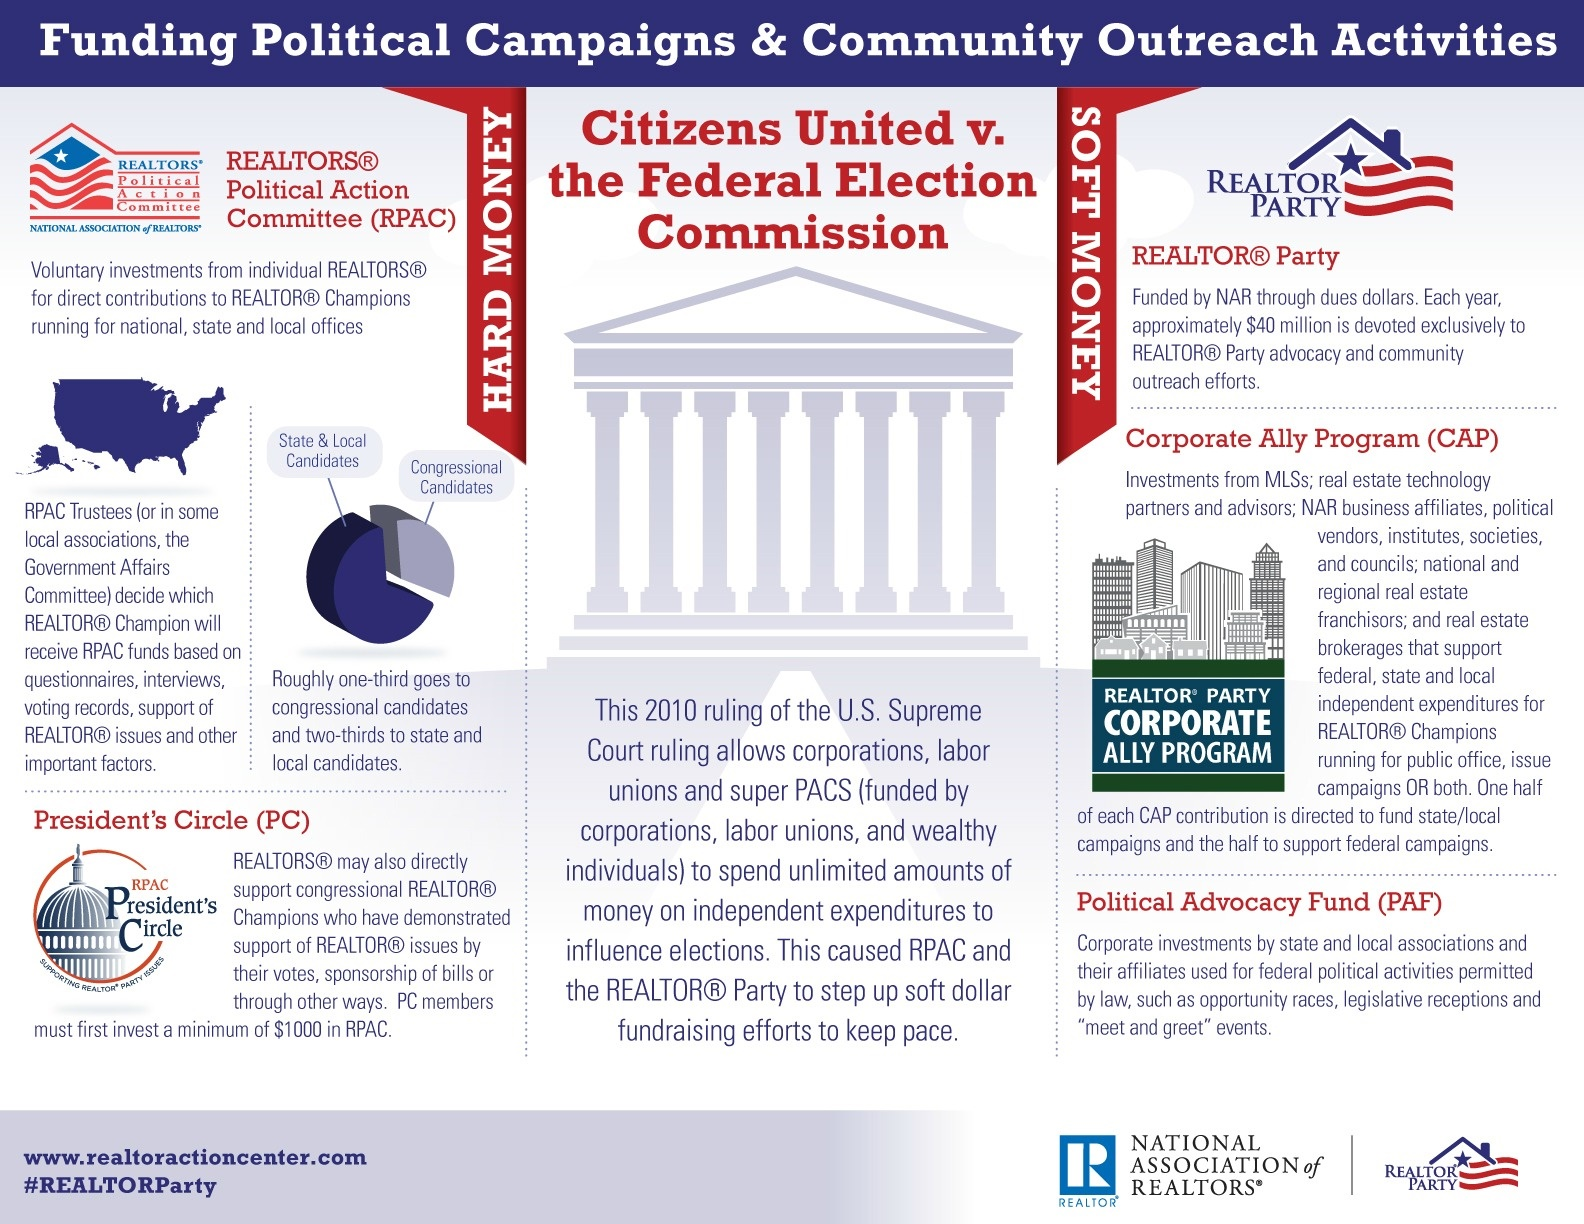 Funding Politcal Campaigns & Community Outreach Activities Information